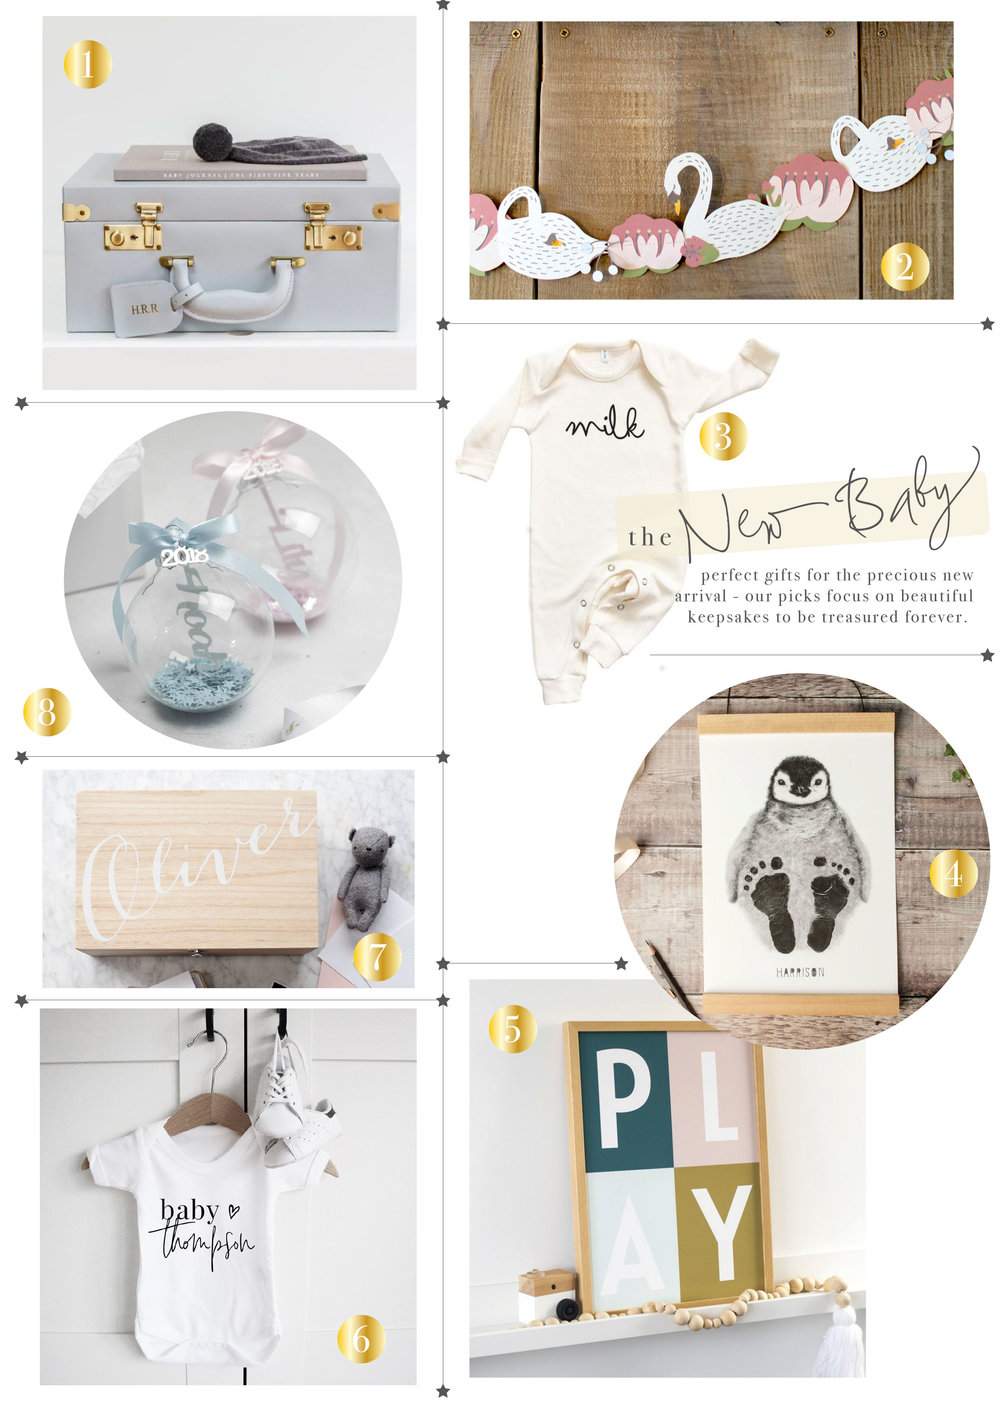 Studio-Seed-Christmas-Gift-Guide---New-Baby.jpg